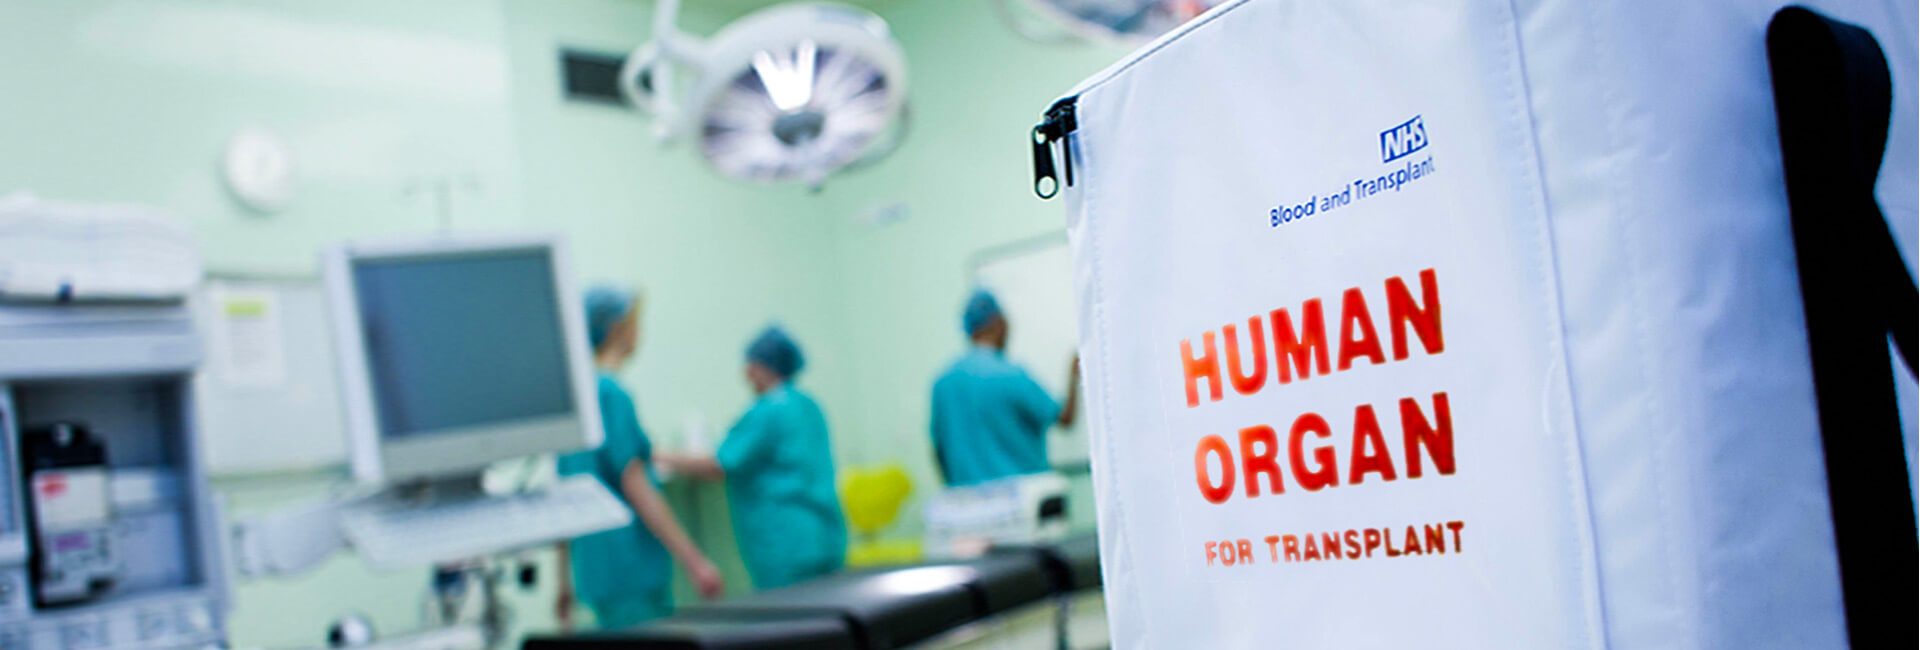 10 things you need to know about an organ transplant in India